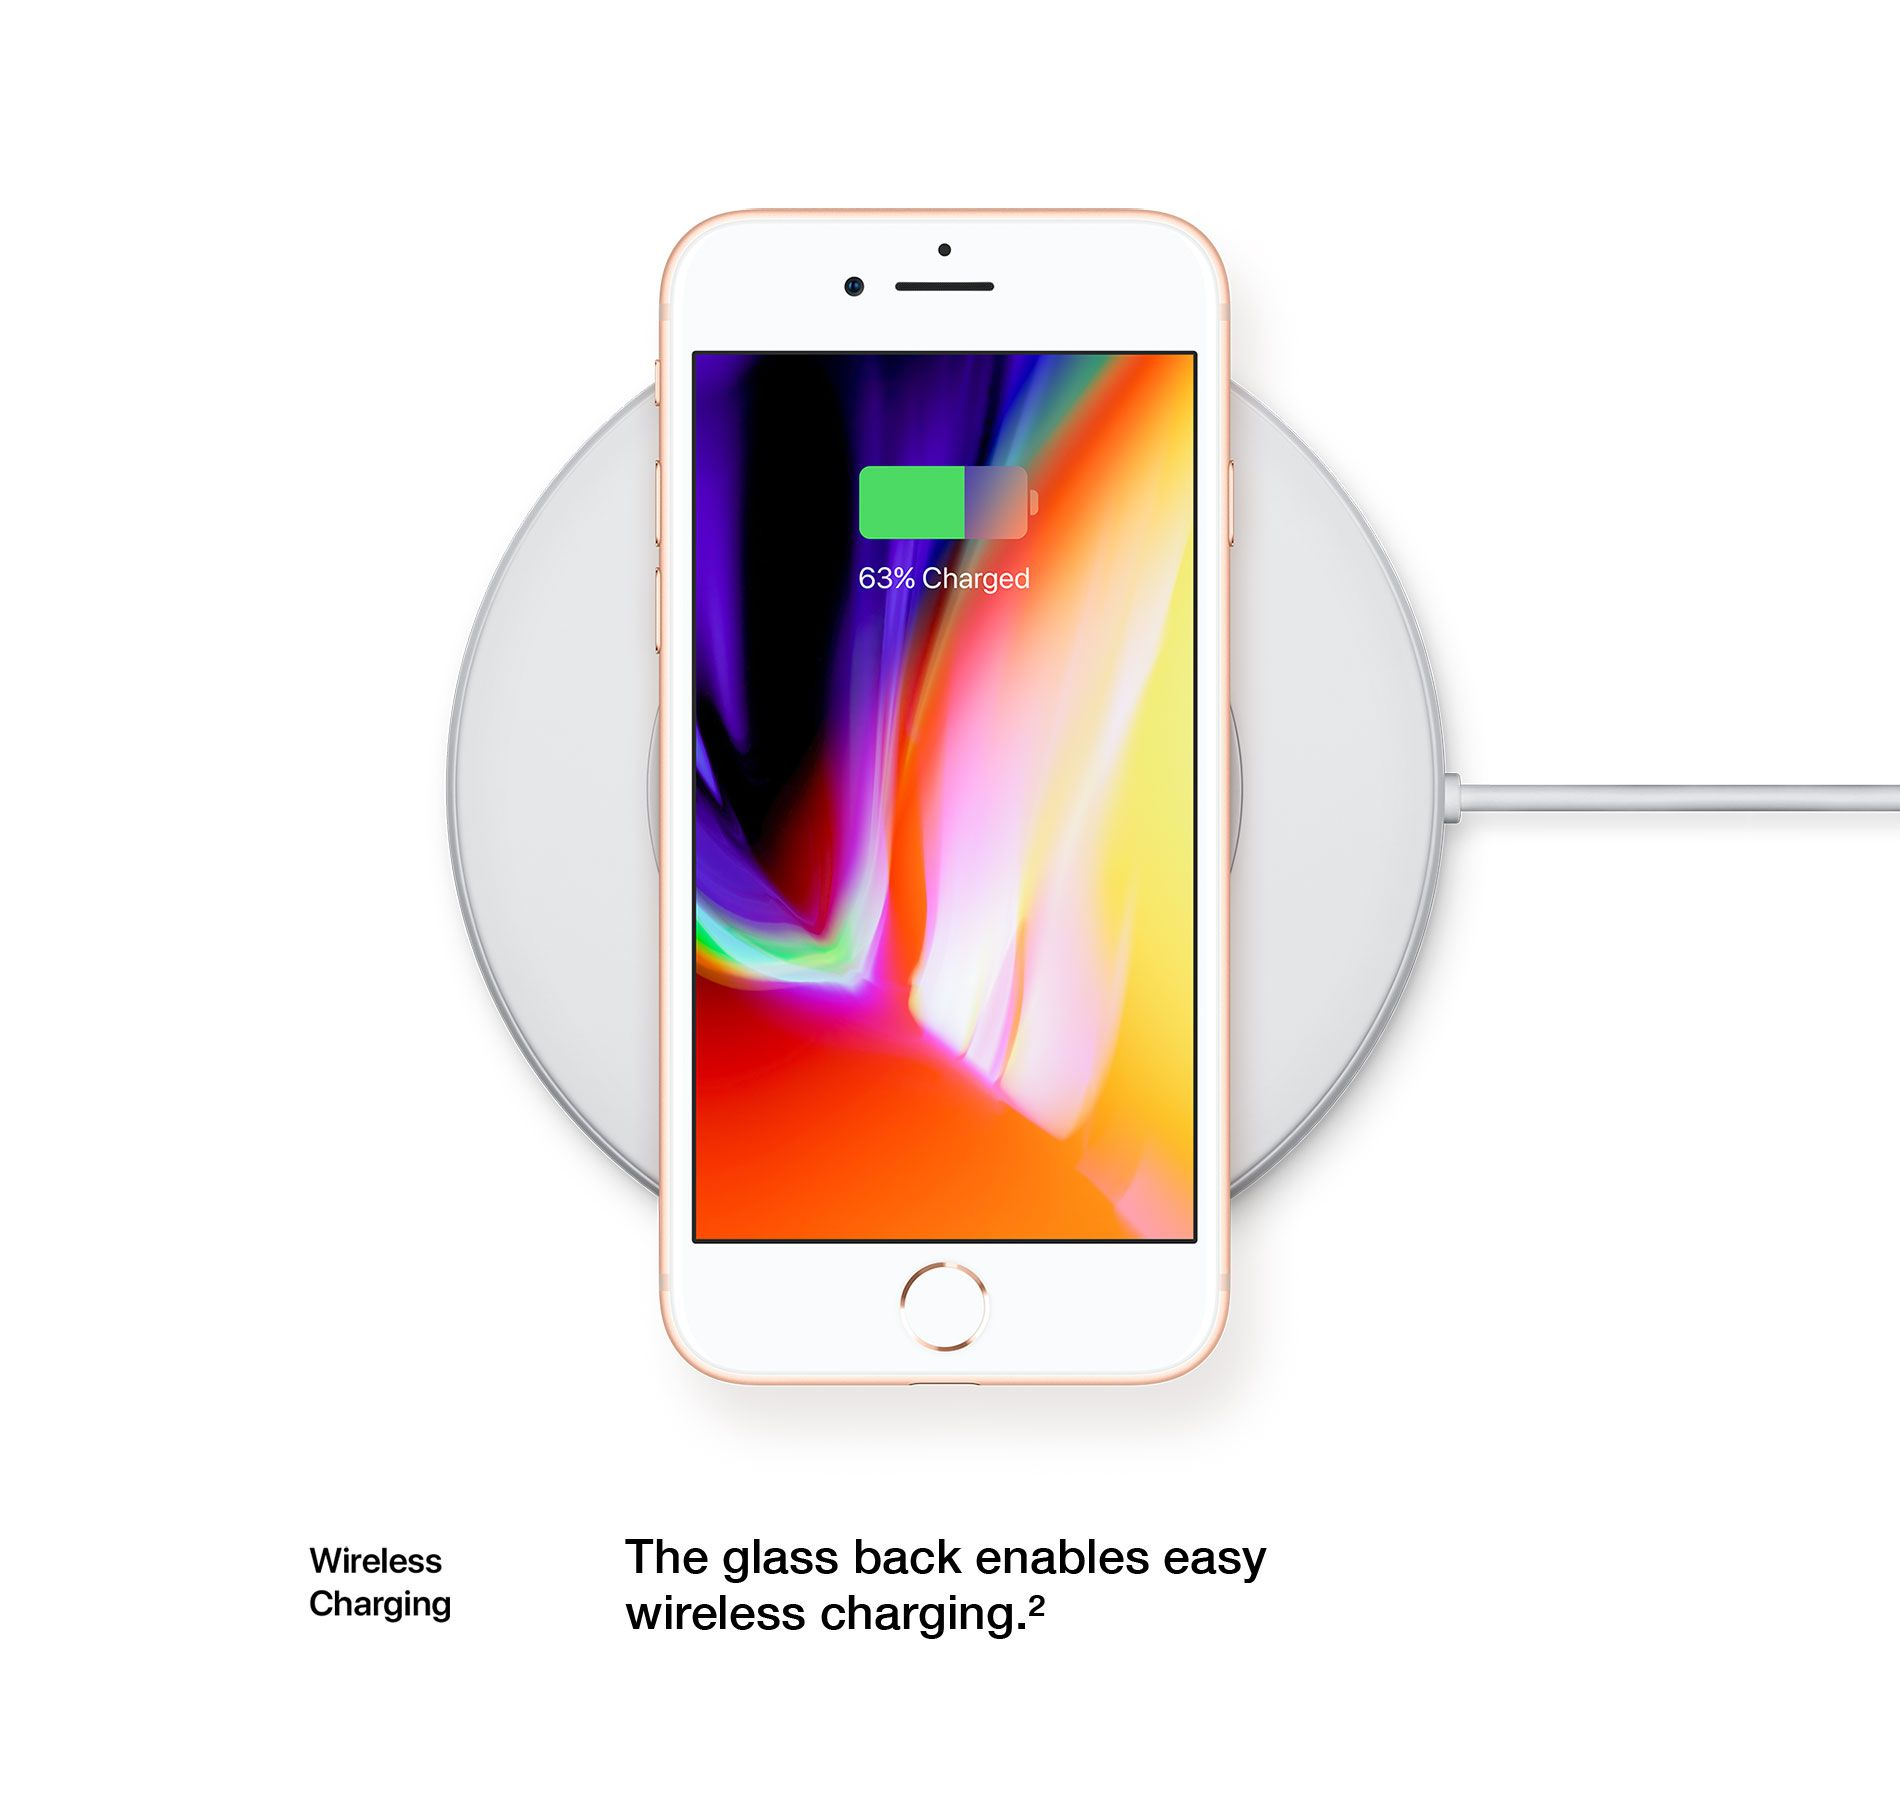 Wireless Charging - The glass back enables easy wireless charging